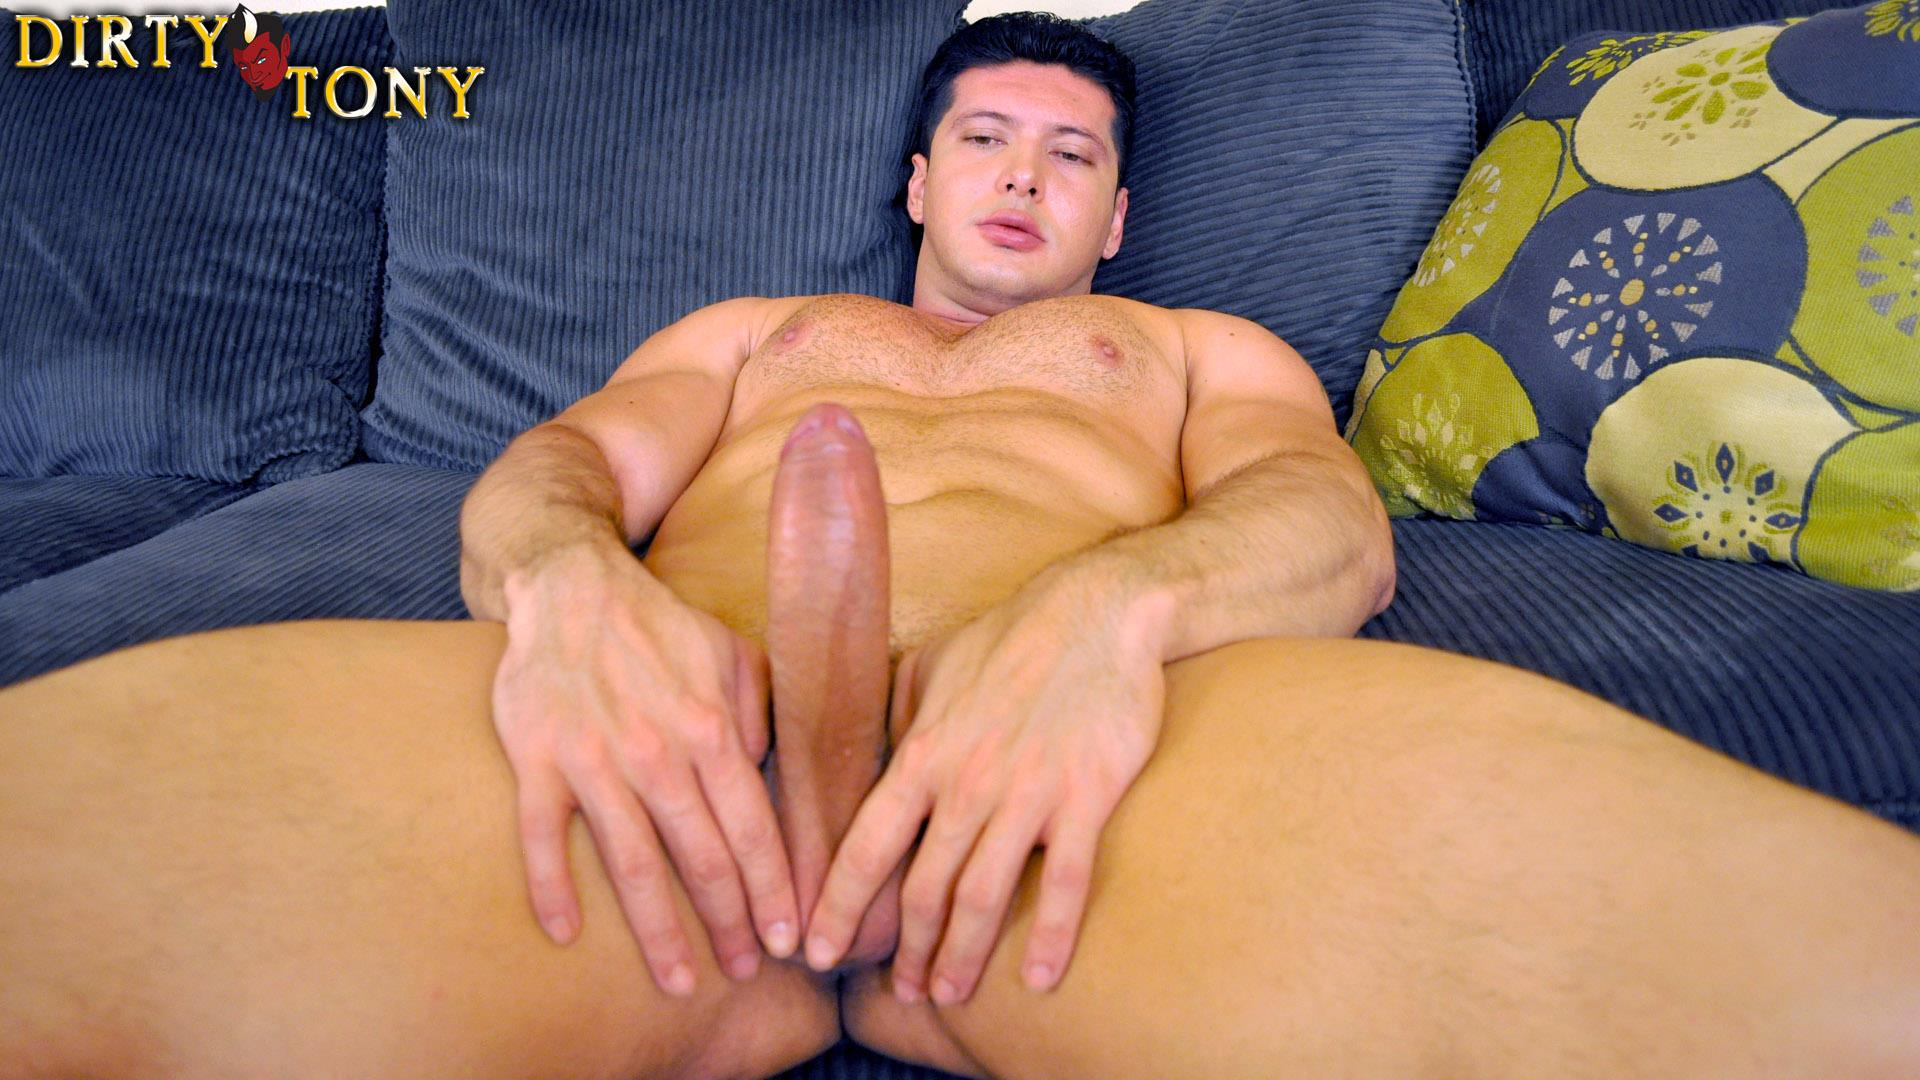 Dirty-Tony-LIAM-SANTIAGO-Straight-Muscle-Latino-Jerking-Off-Big-Uncut-Cock-Amateur-Gay-Porn-04 Straight Hairy Muscle Latino Auditions For Gay Porn With A Big Uncut Cock